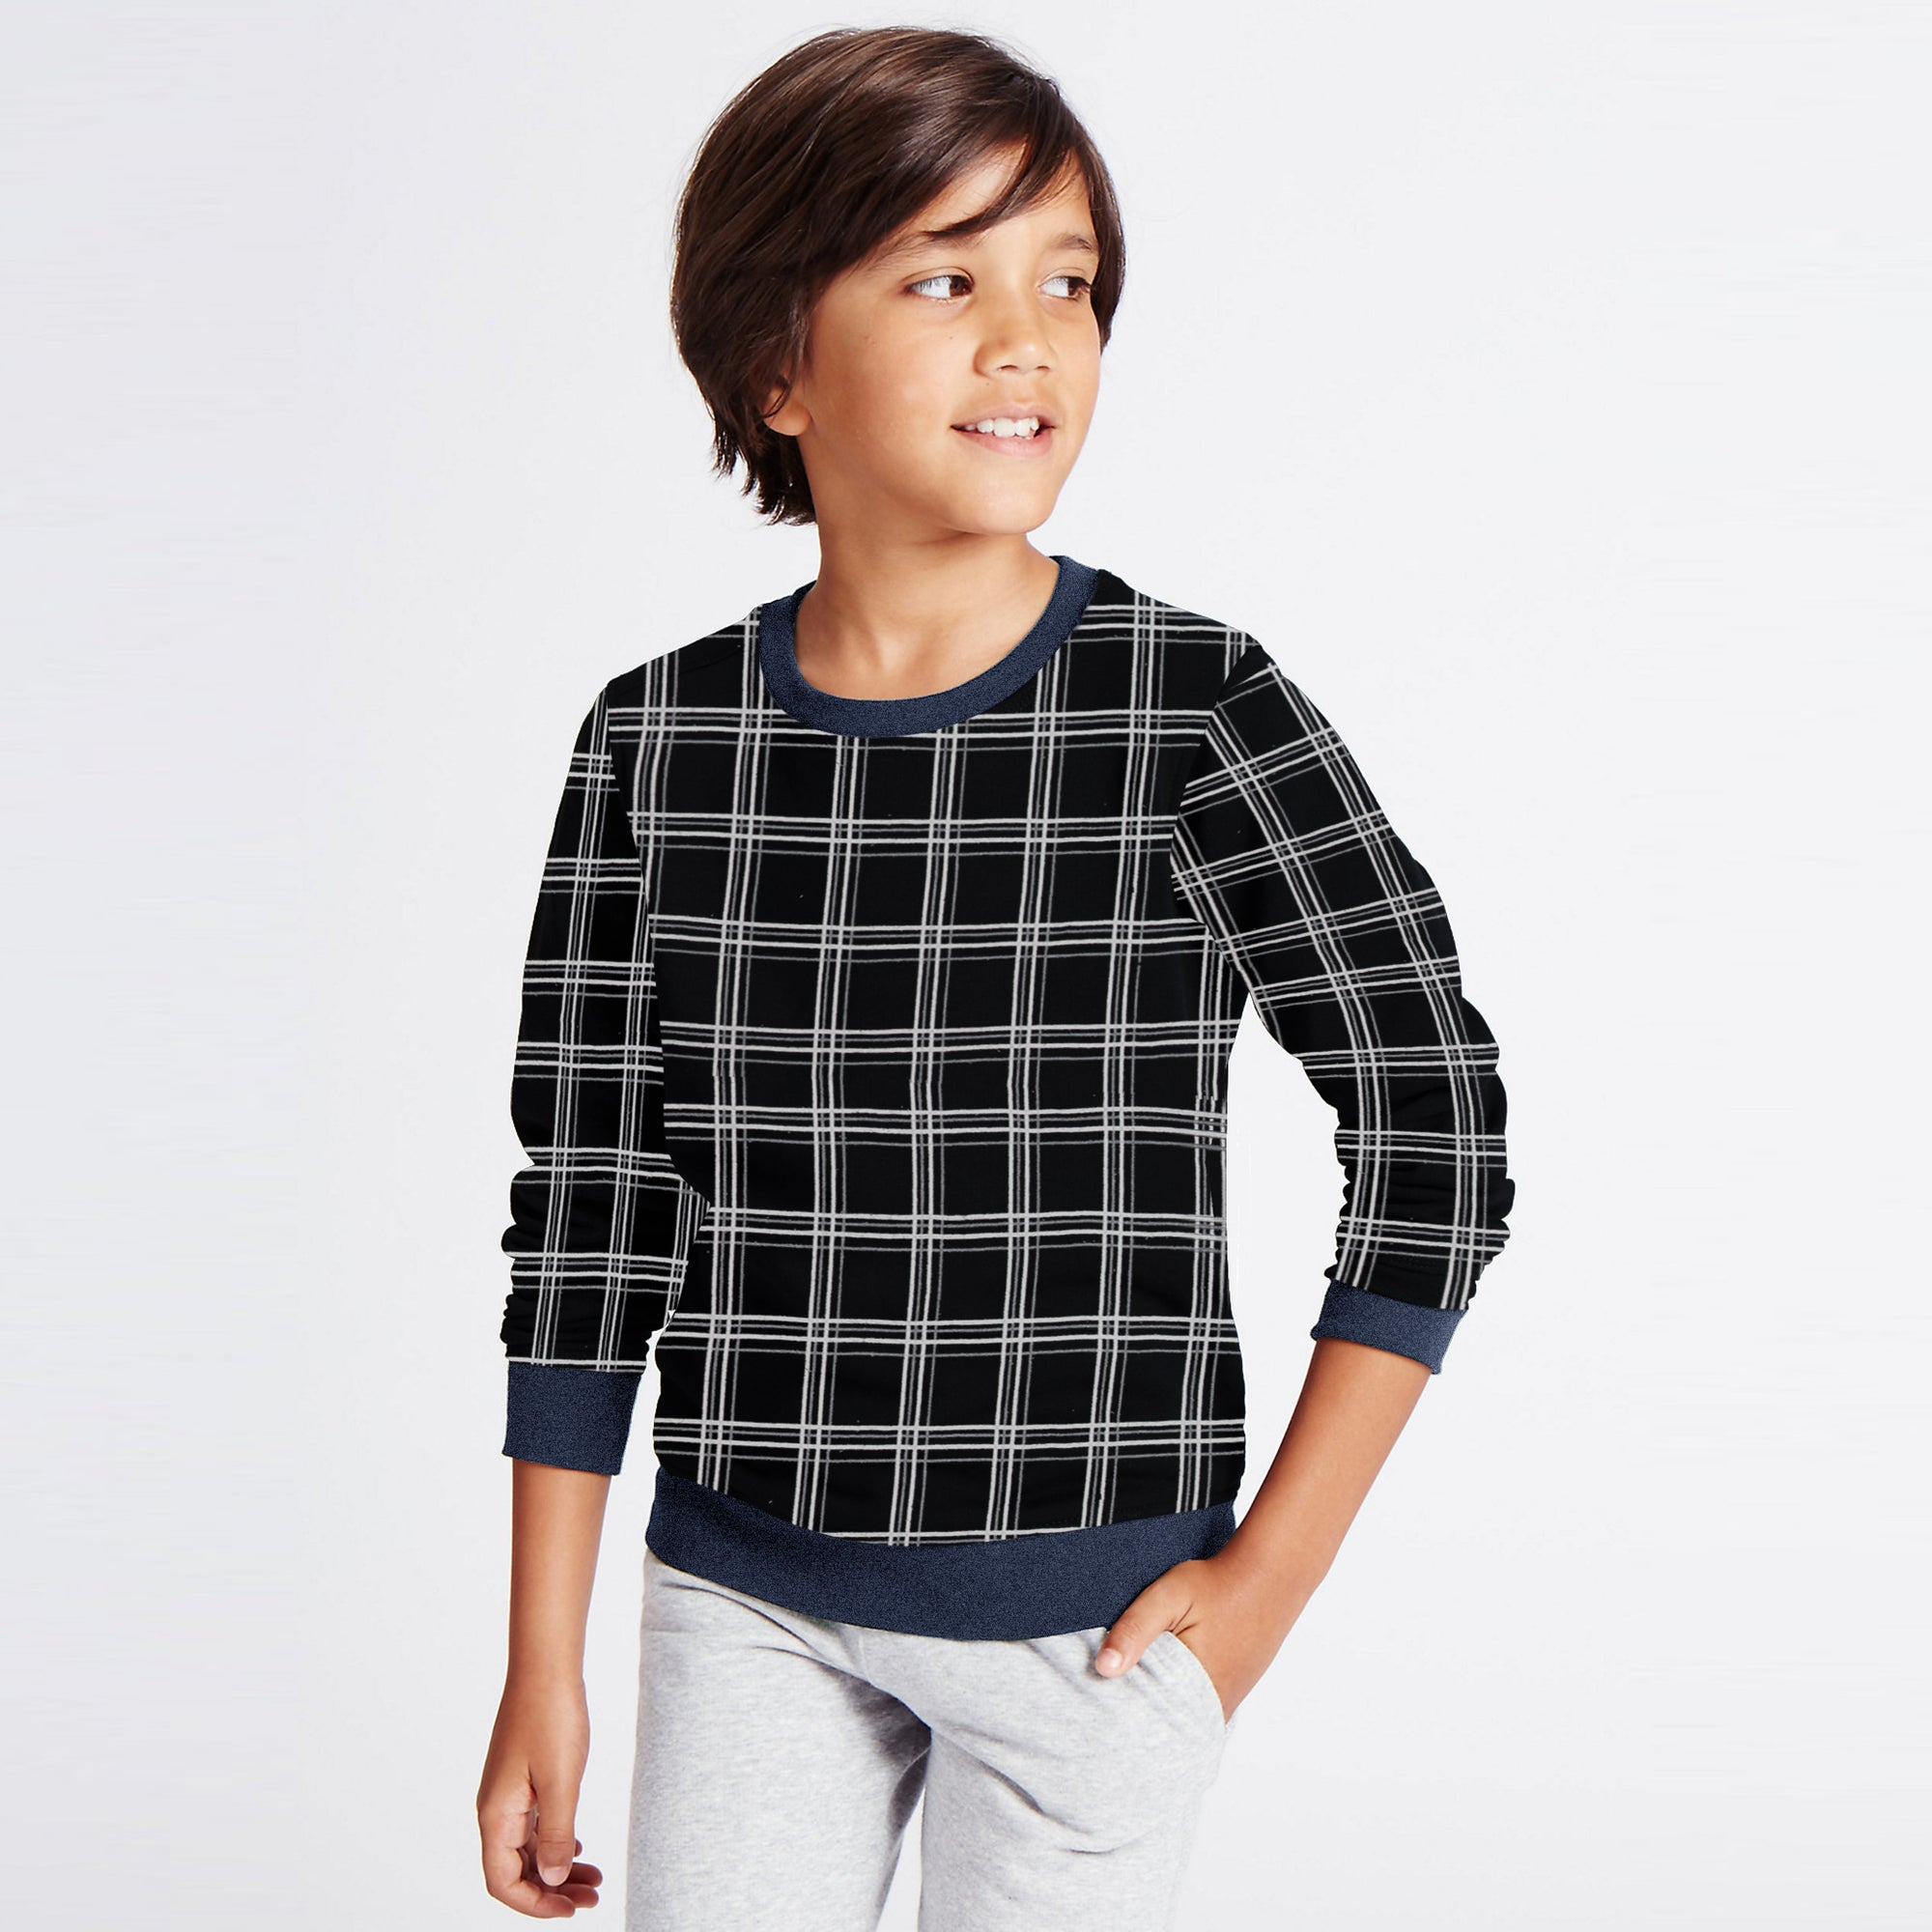 Tommy Hilfiger Fleece Crew Neck Sweatshirt For Kids-Allover Print-SP1369